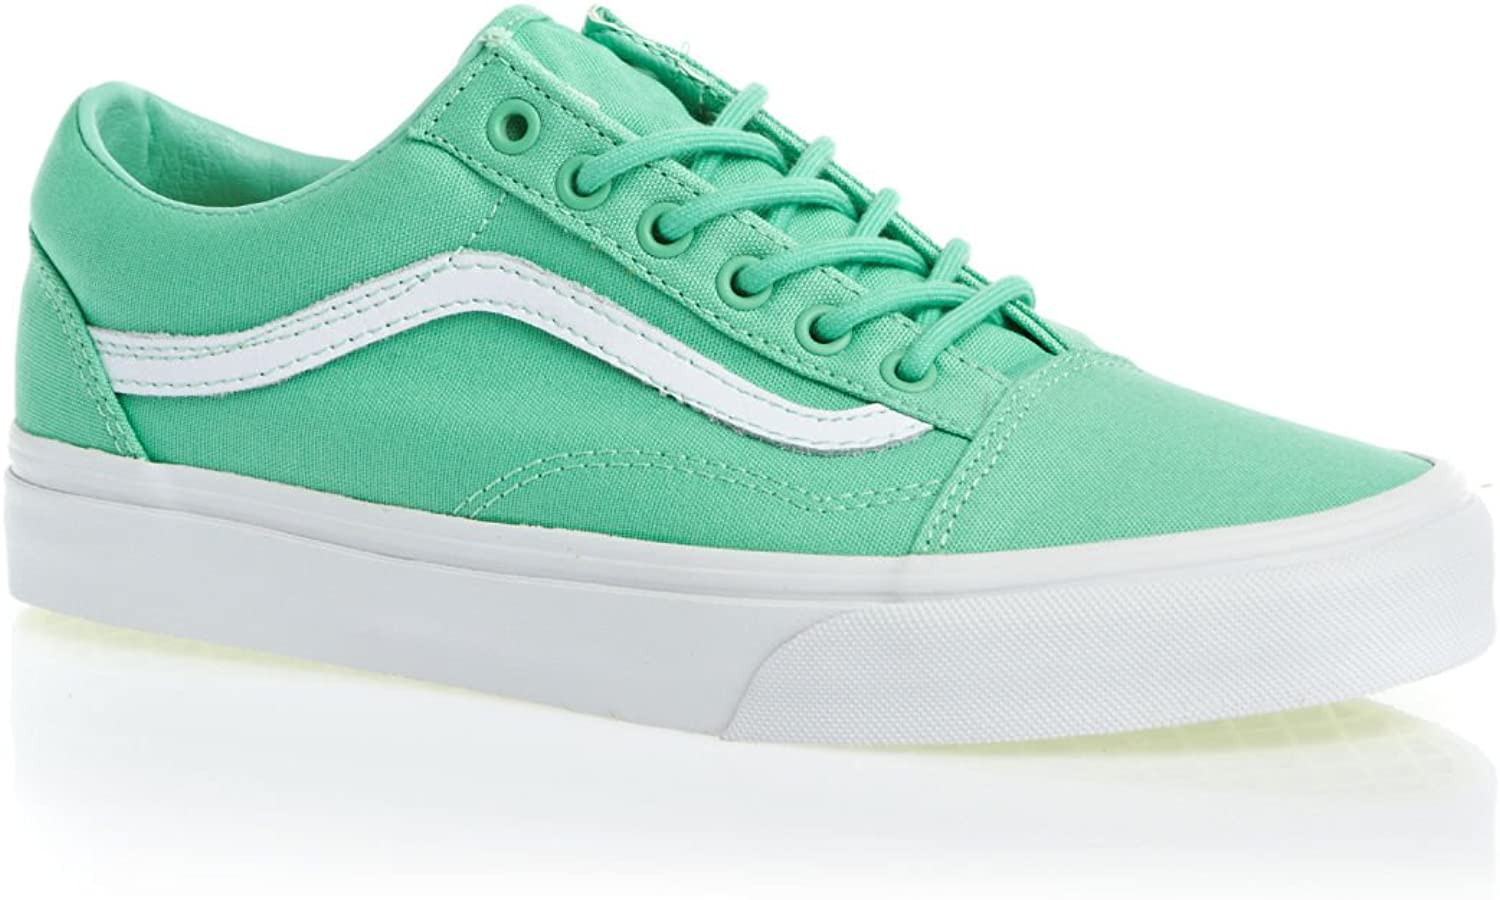 Vans Unisex Adults' Vd3hesp Trainers